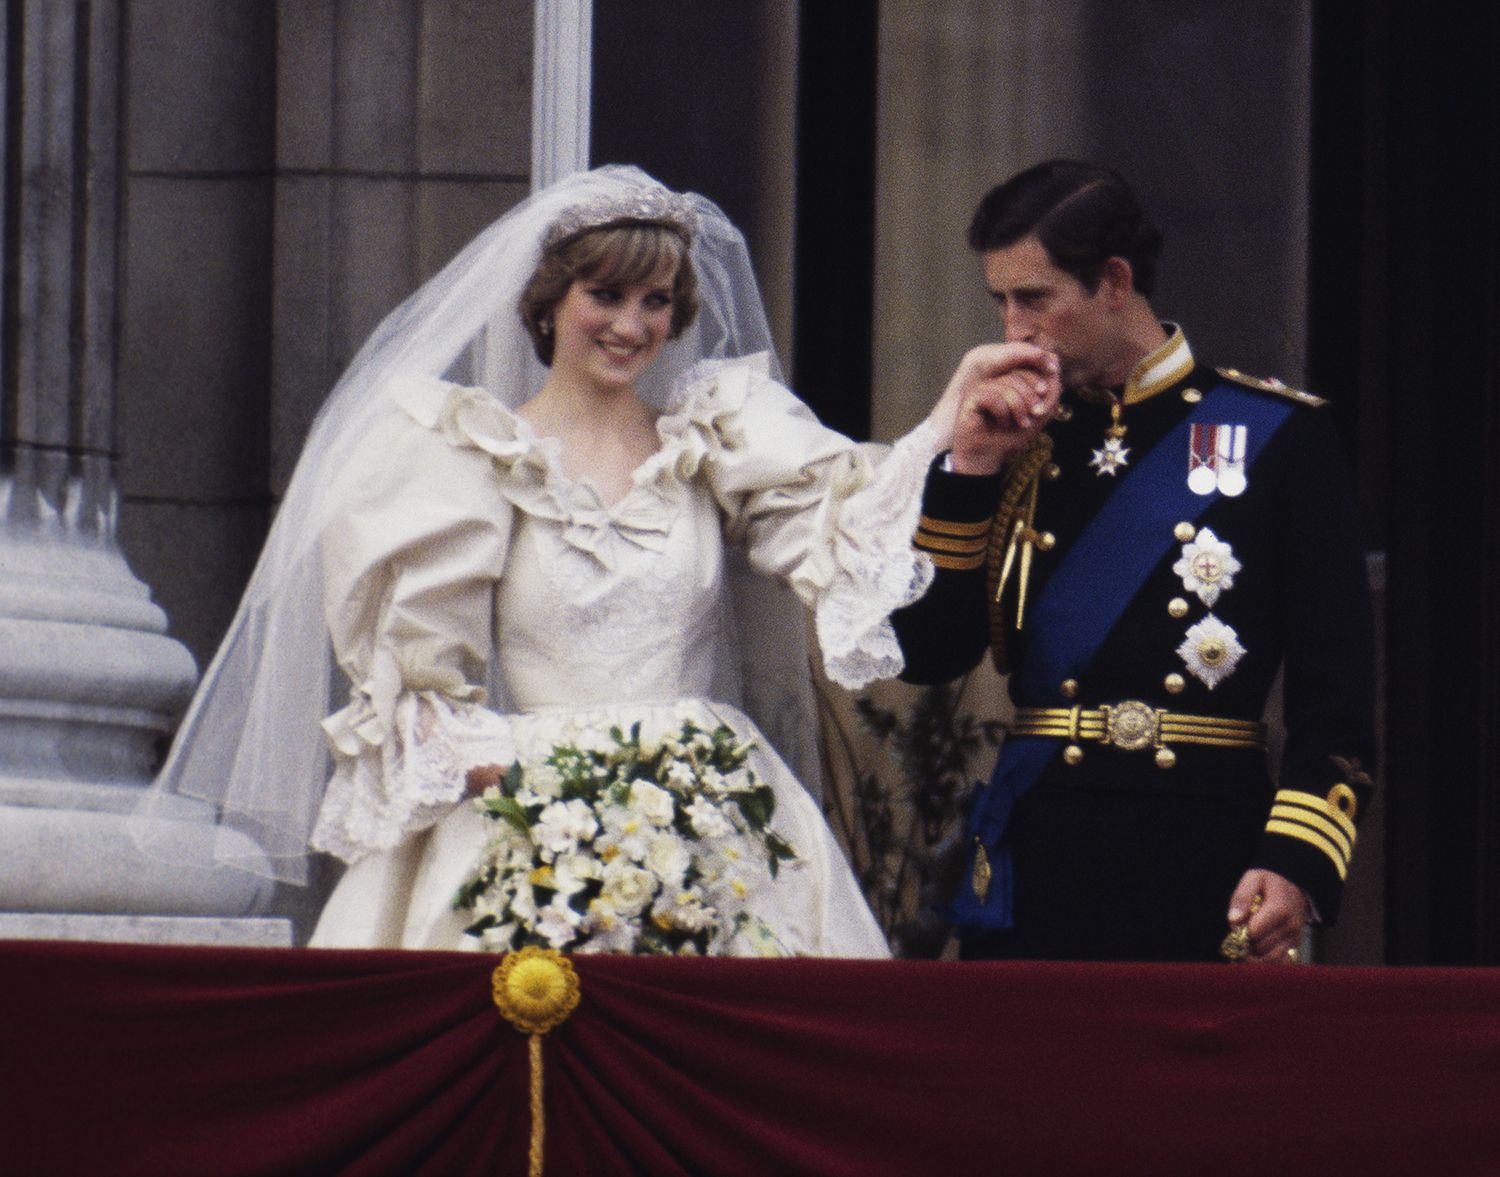 Princess Diana Had a Secret Second Wedding Dress That Nobody Ever Saw for Her Marriage to Prince Charles